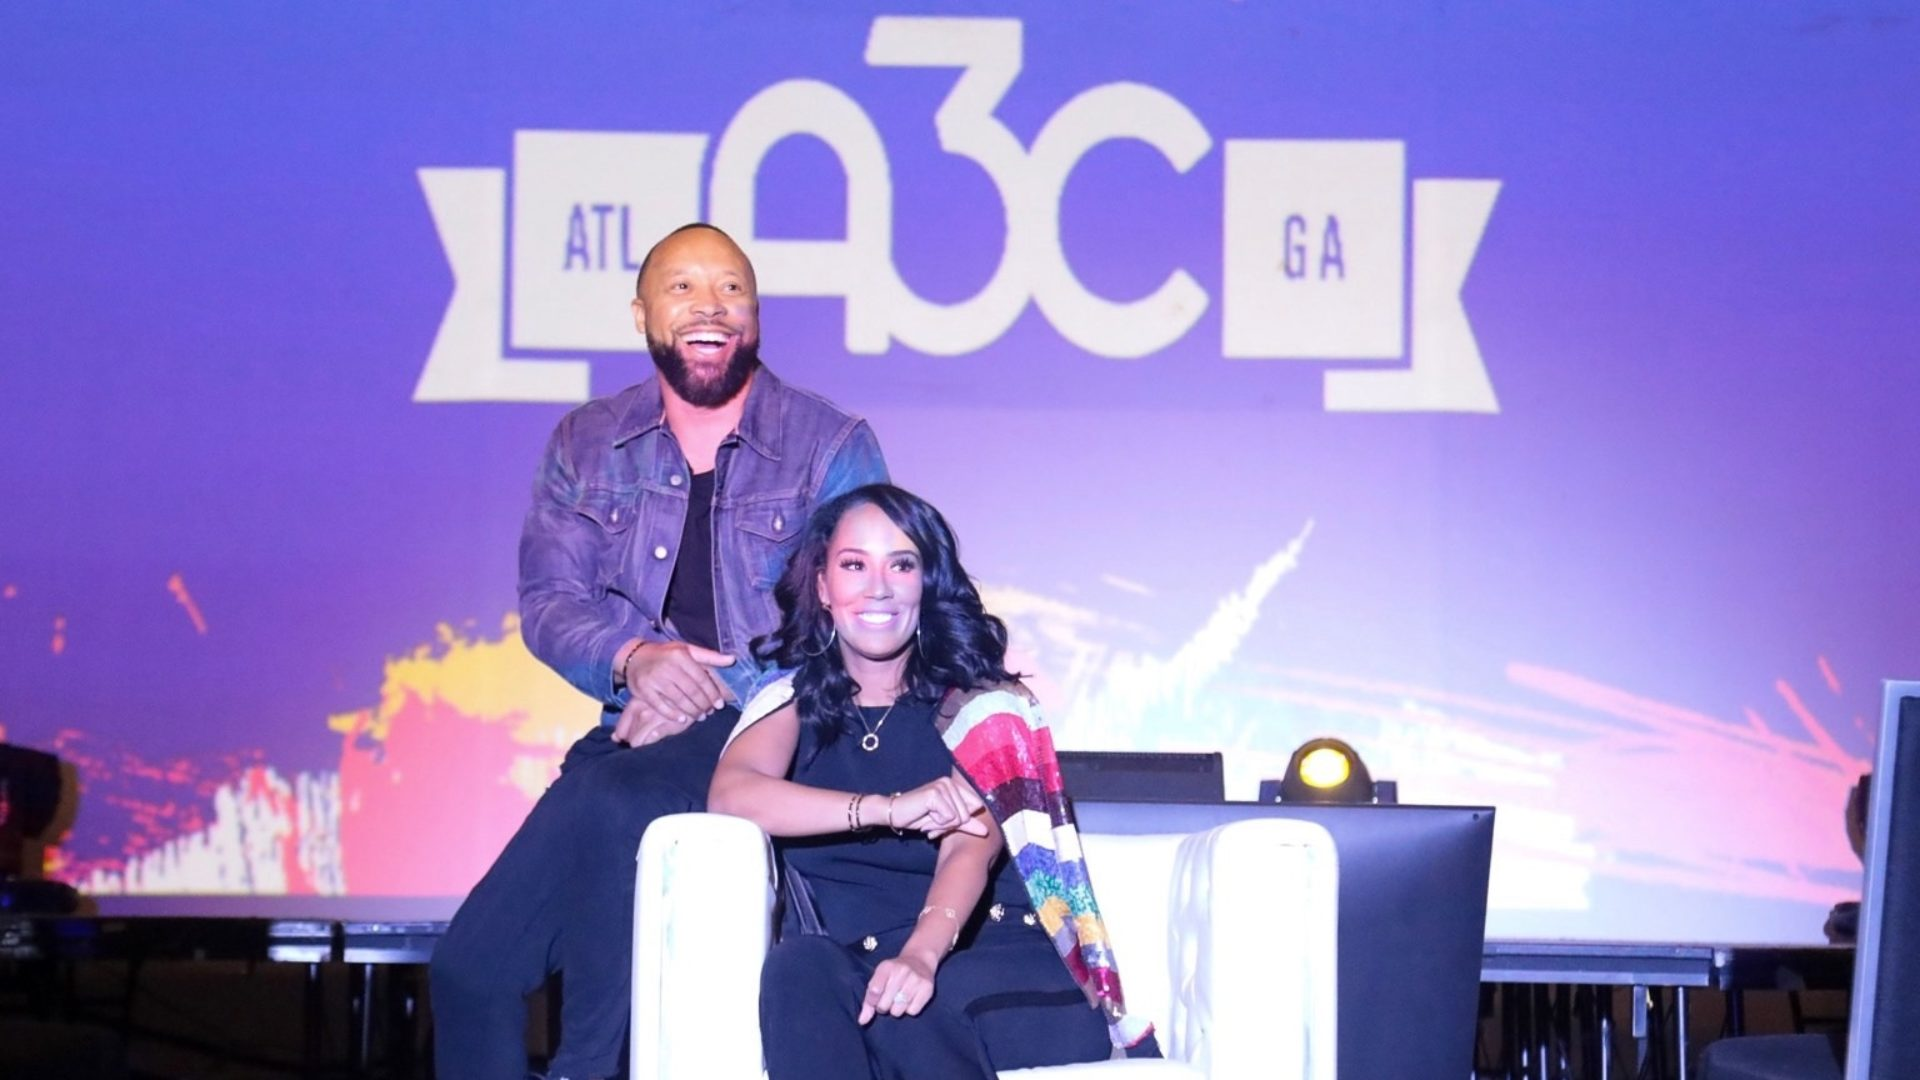 'RHOA' Tanya Sam And Paul Judge Are The New Owners Of A3C